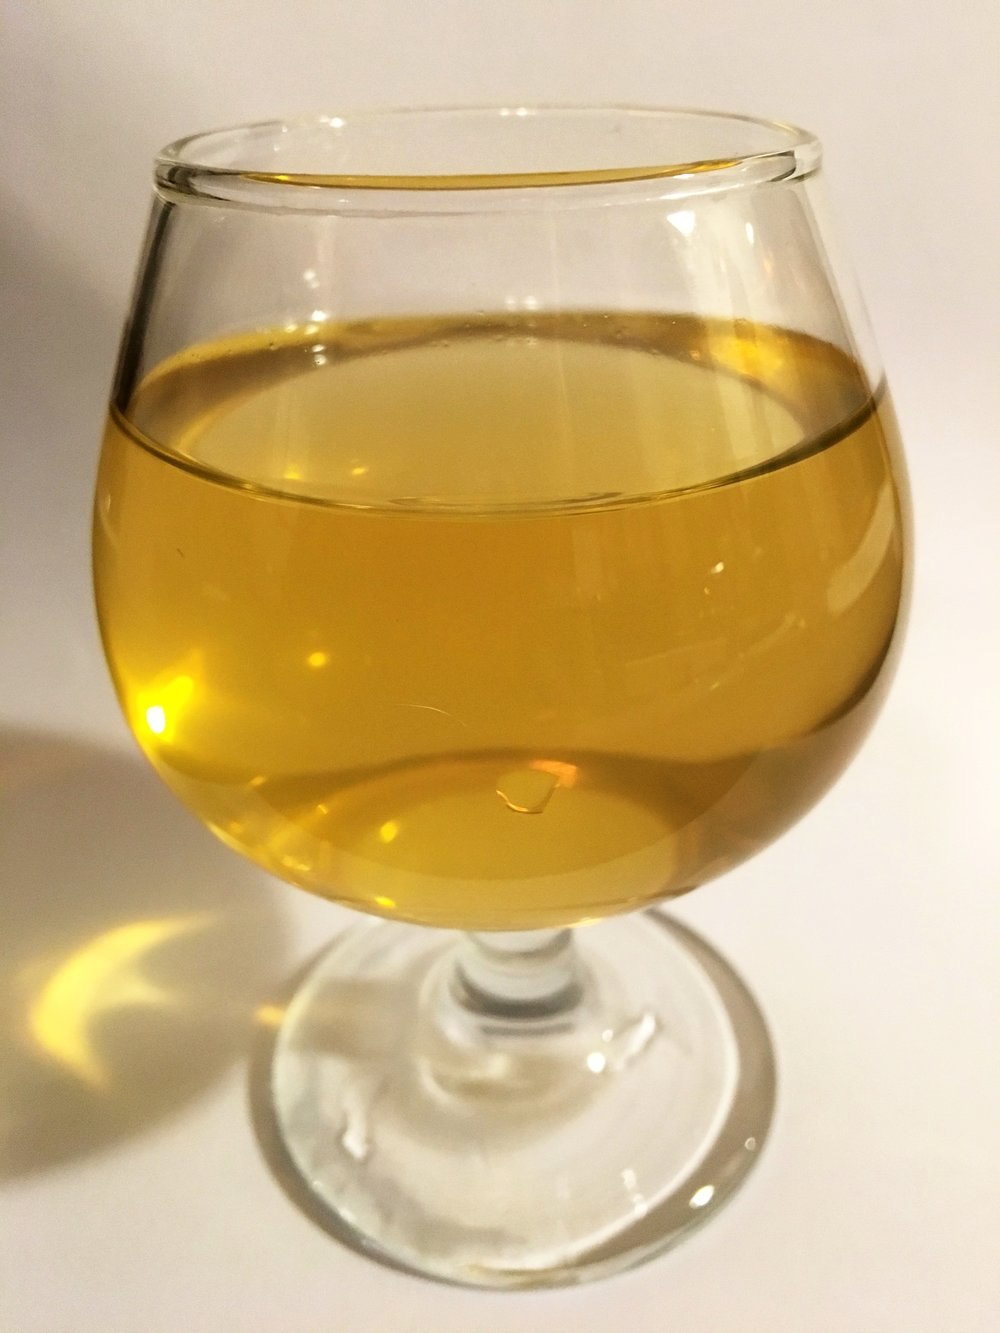 Early Windsor Cider